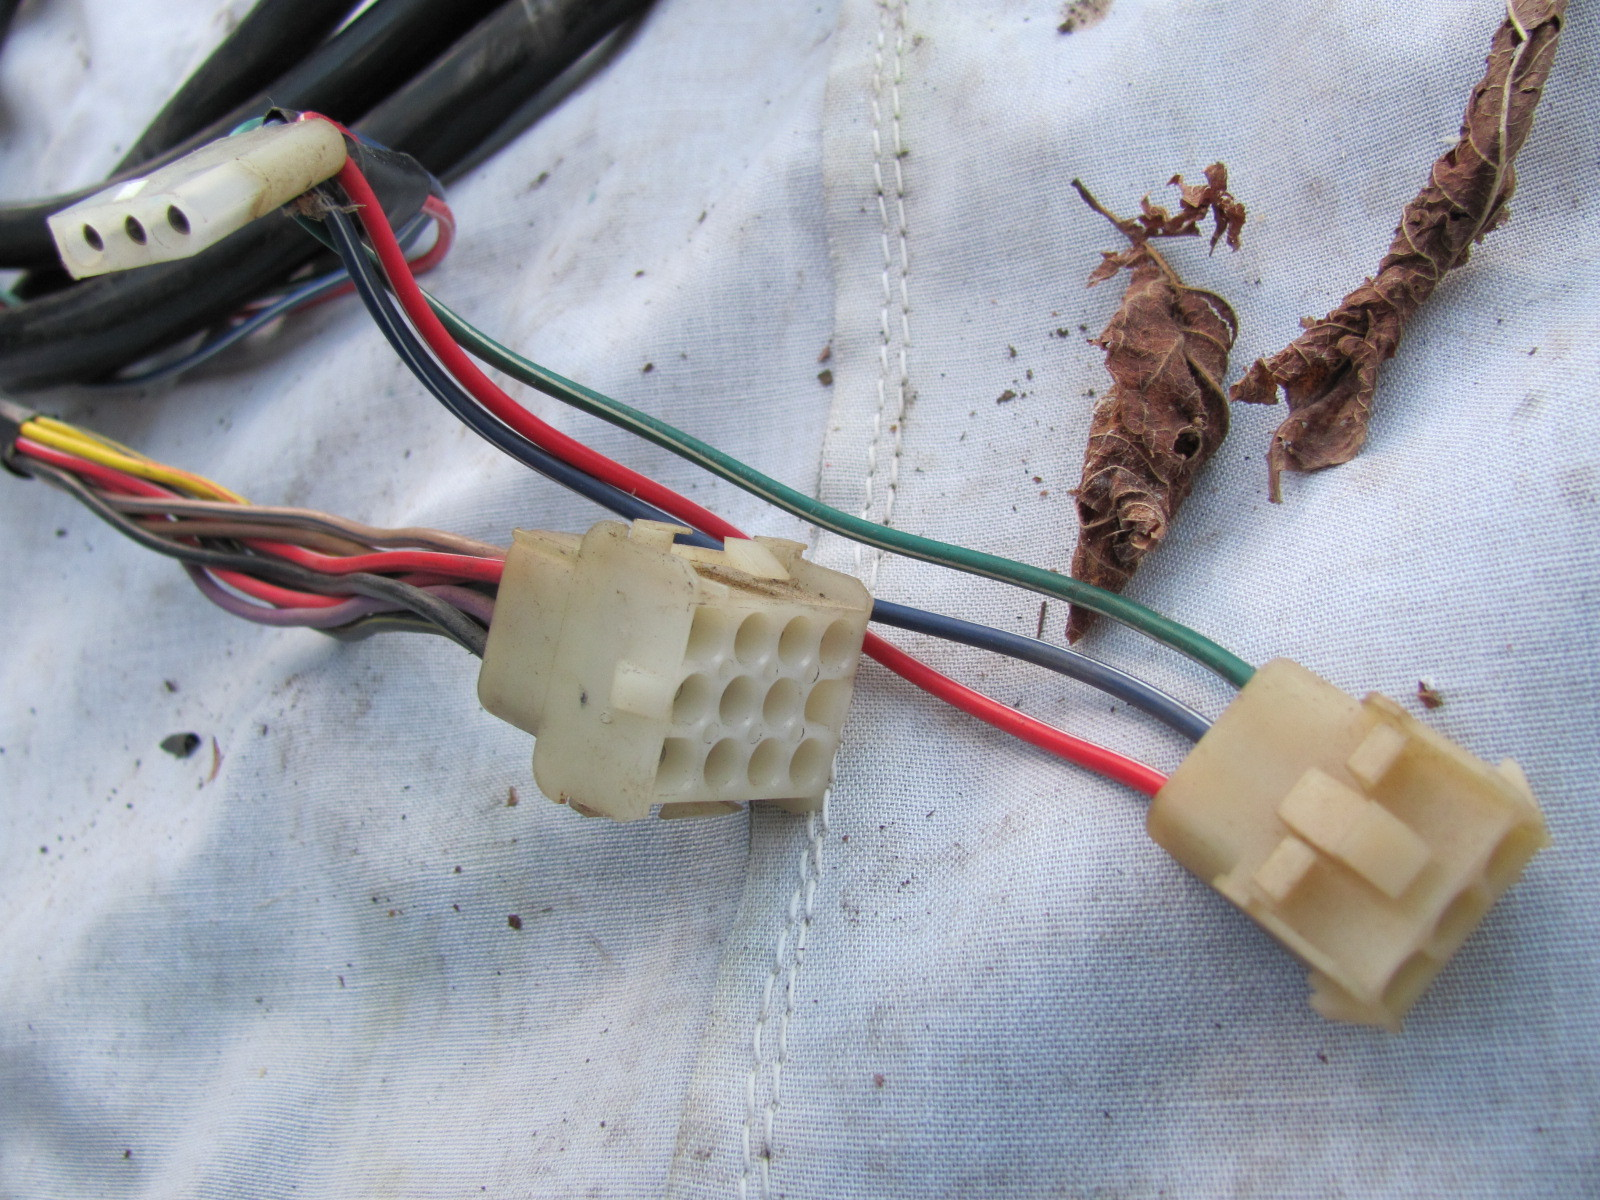 Mercury Tracker 16' Engine Harness 8 Pin and 10 similar items on mercury wiring diagrams, mercury voltage regulator, mercury tach wiring, mercury wiring color code, mercury harness part number,